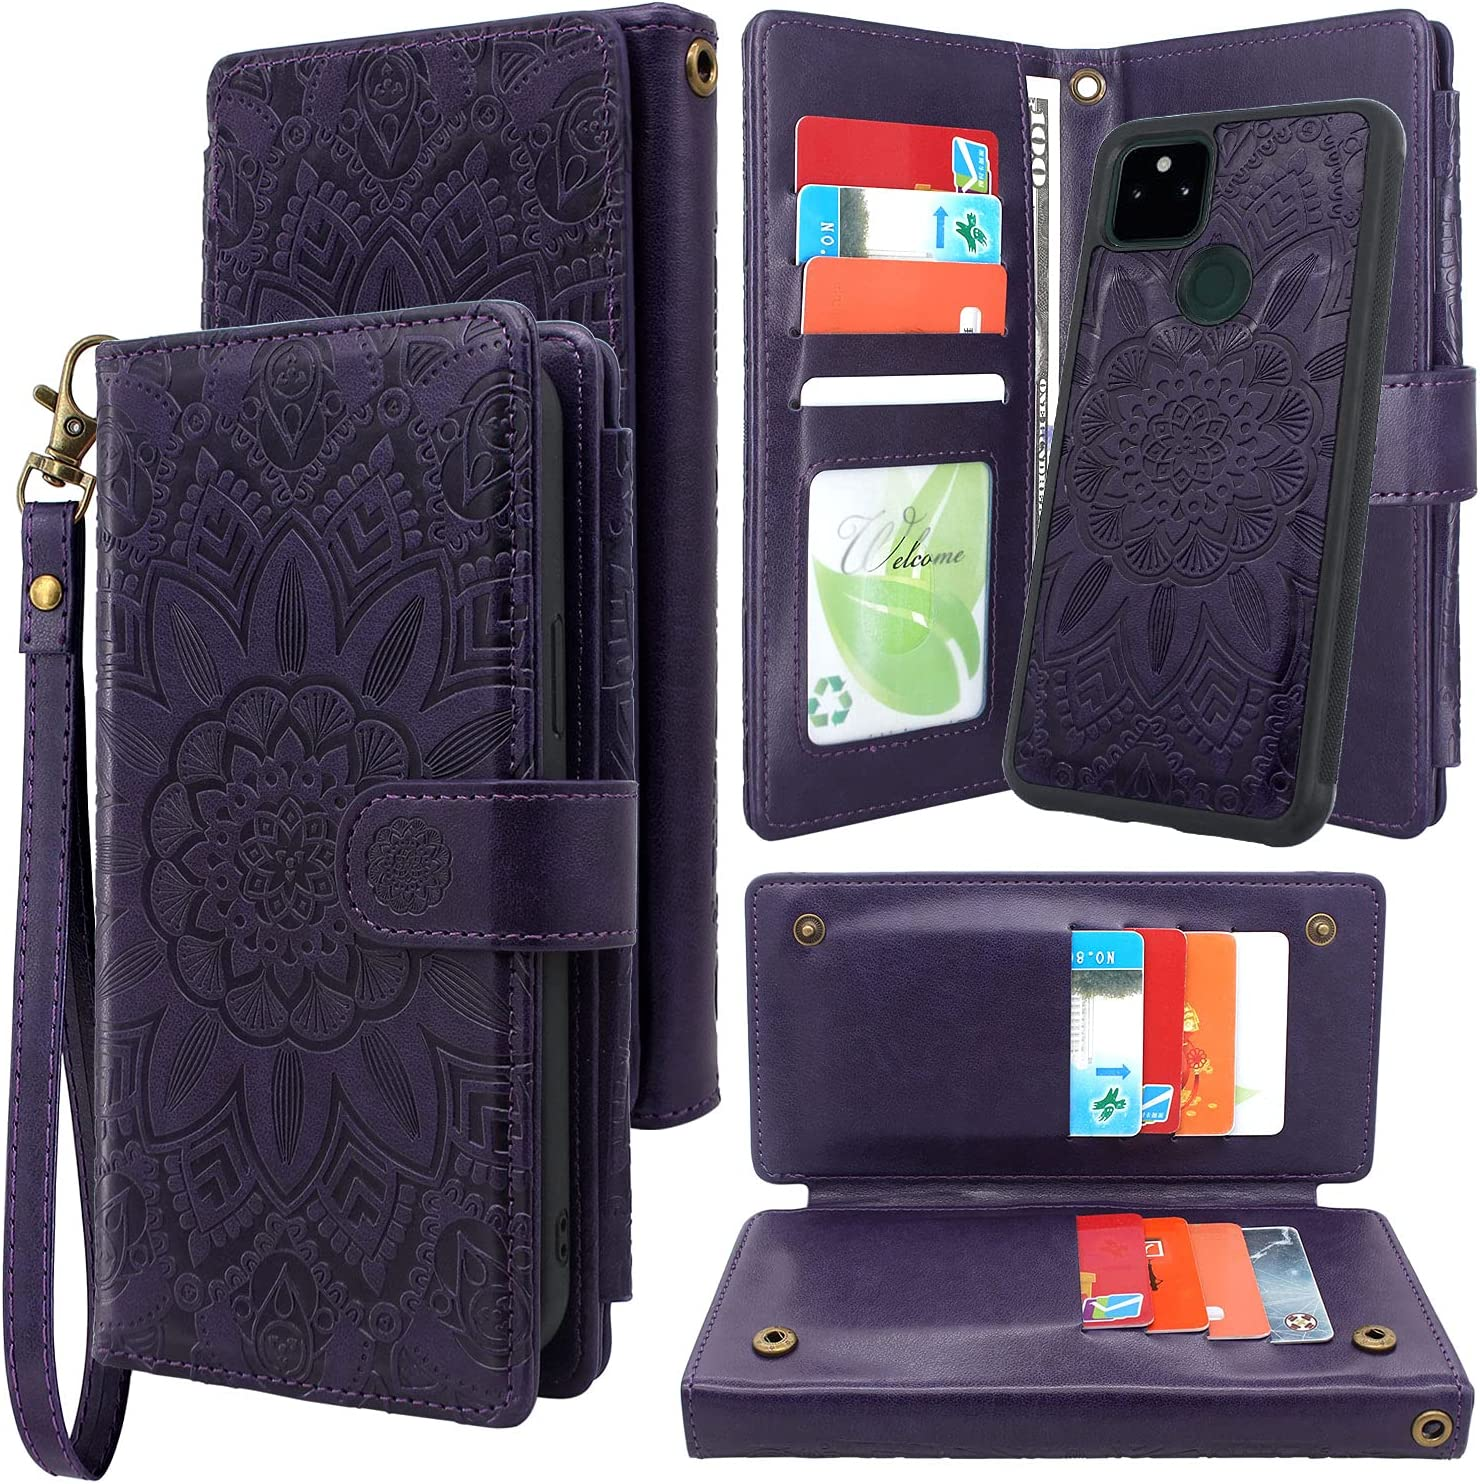 Harryshell Detachable Magnetic 12 Card Slots Holder Wallet Case PU Leather Flip Protective Cover with Wrist Strap Kickstand for Google Pixel 5A 5G (2021) Floral Flower (Purple)